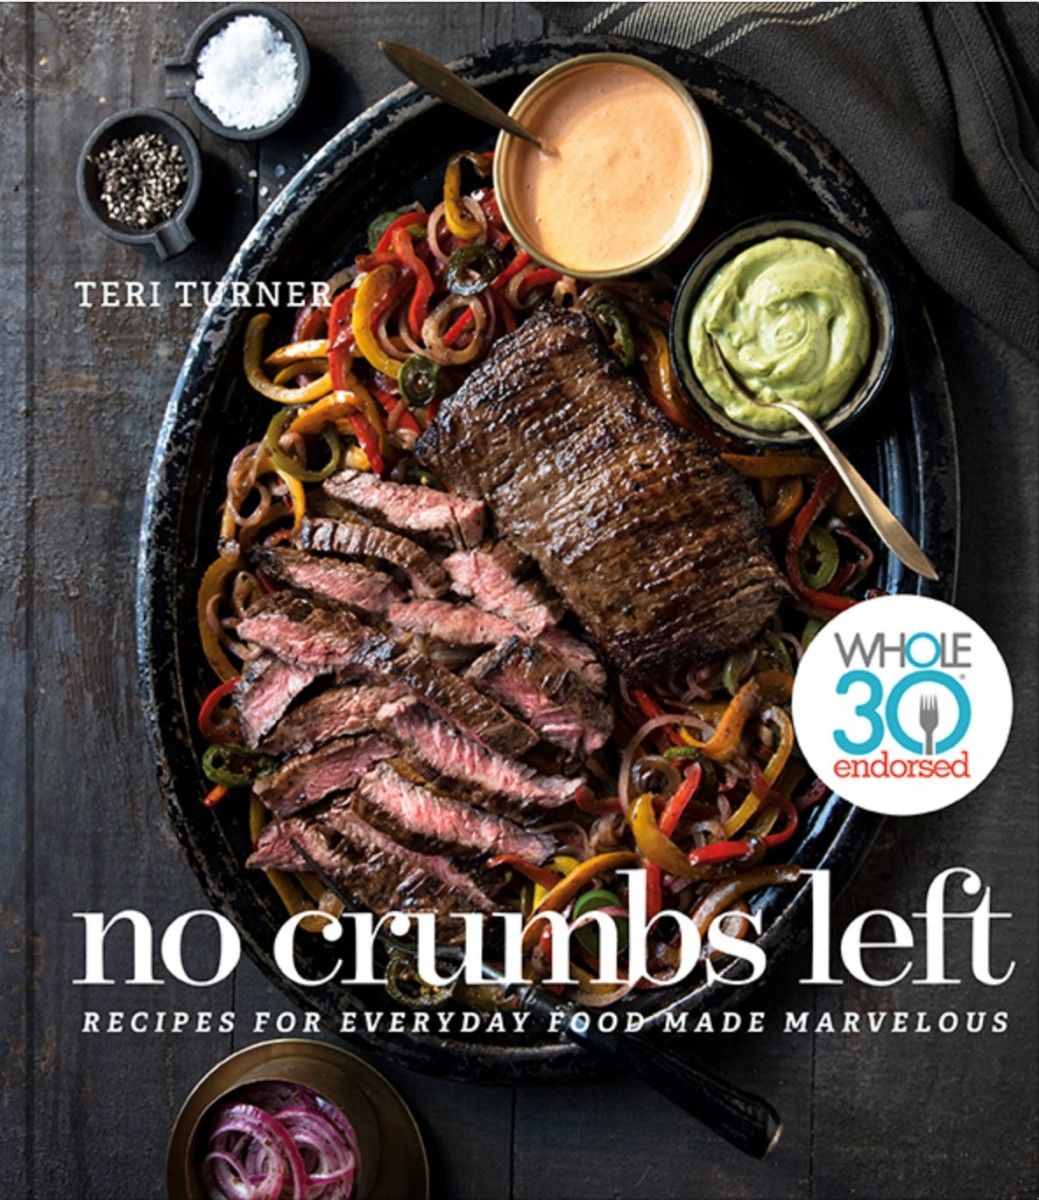 No Crumbs Left: Whole30 Endorsed, Recipes for Everyday Food Made Marvelous © 2019 by Teri Turner LLC. Photography © 2019 by Tim Turner. Reproduced by permission of Houghton Mifflin Harcourt. All rights reserved.